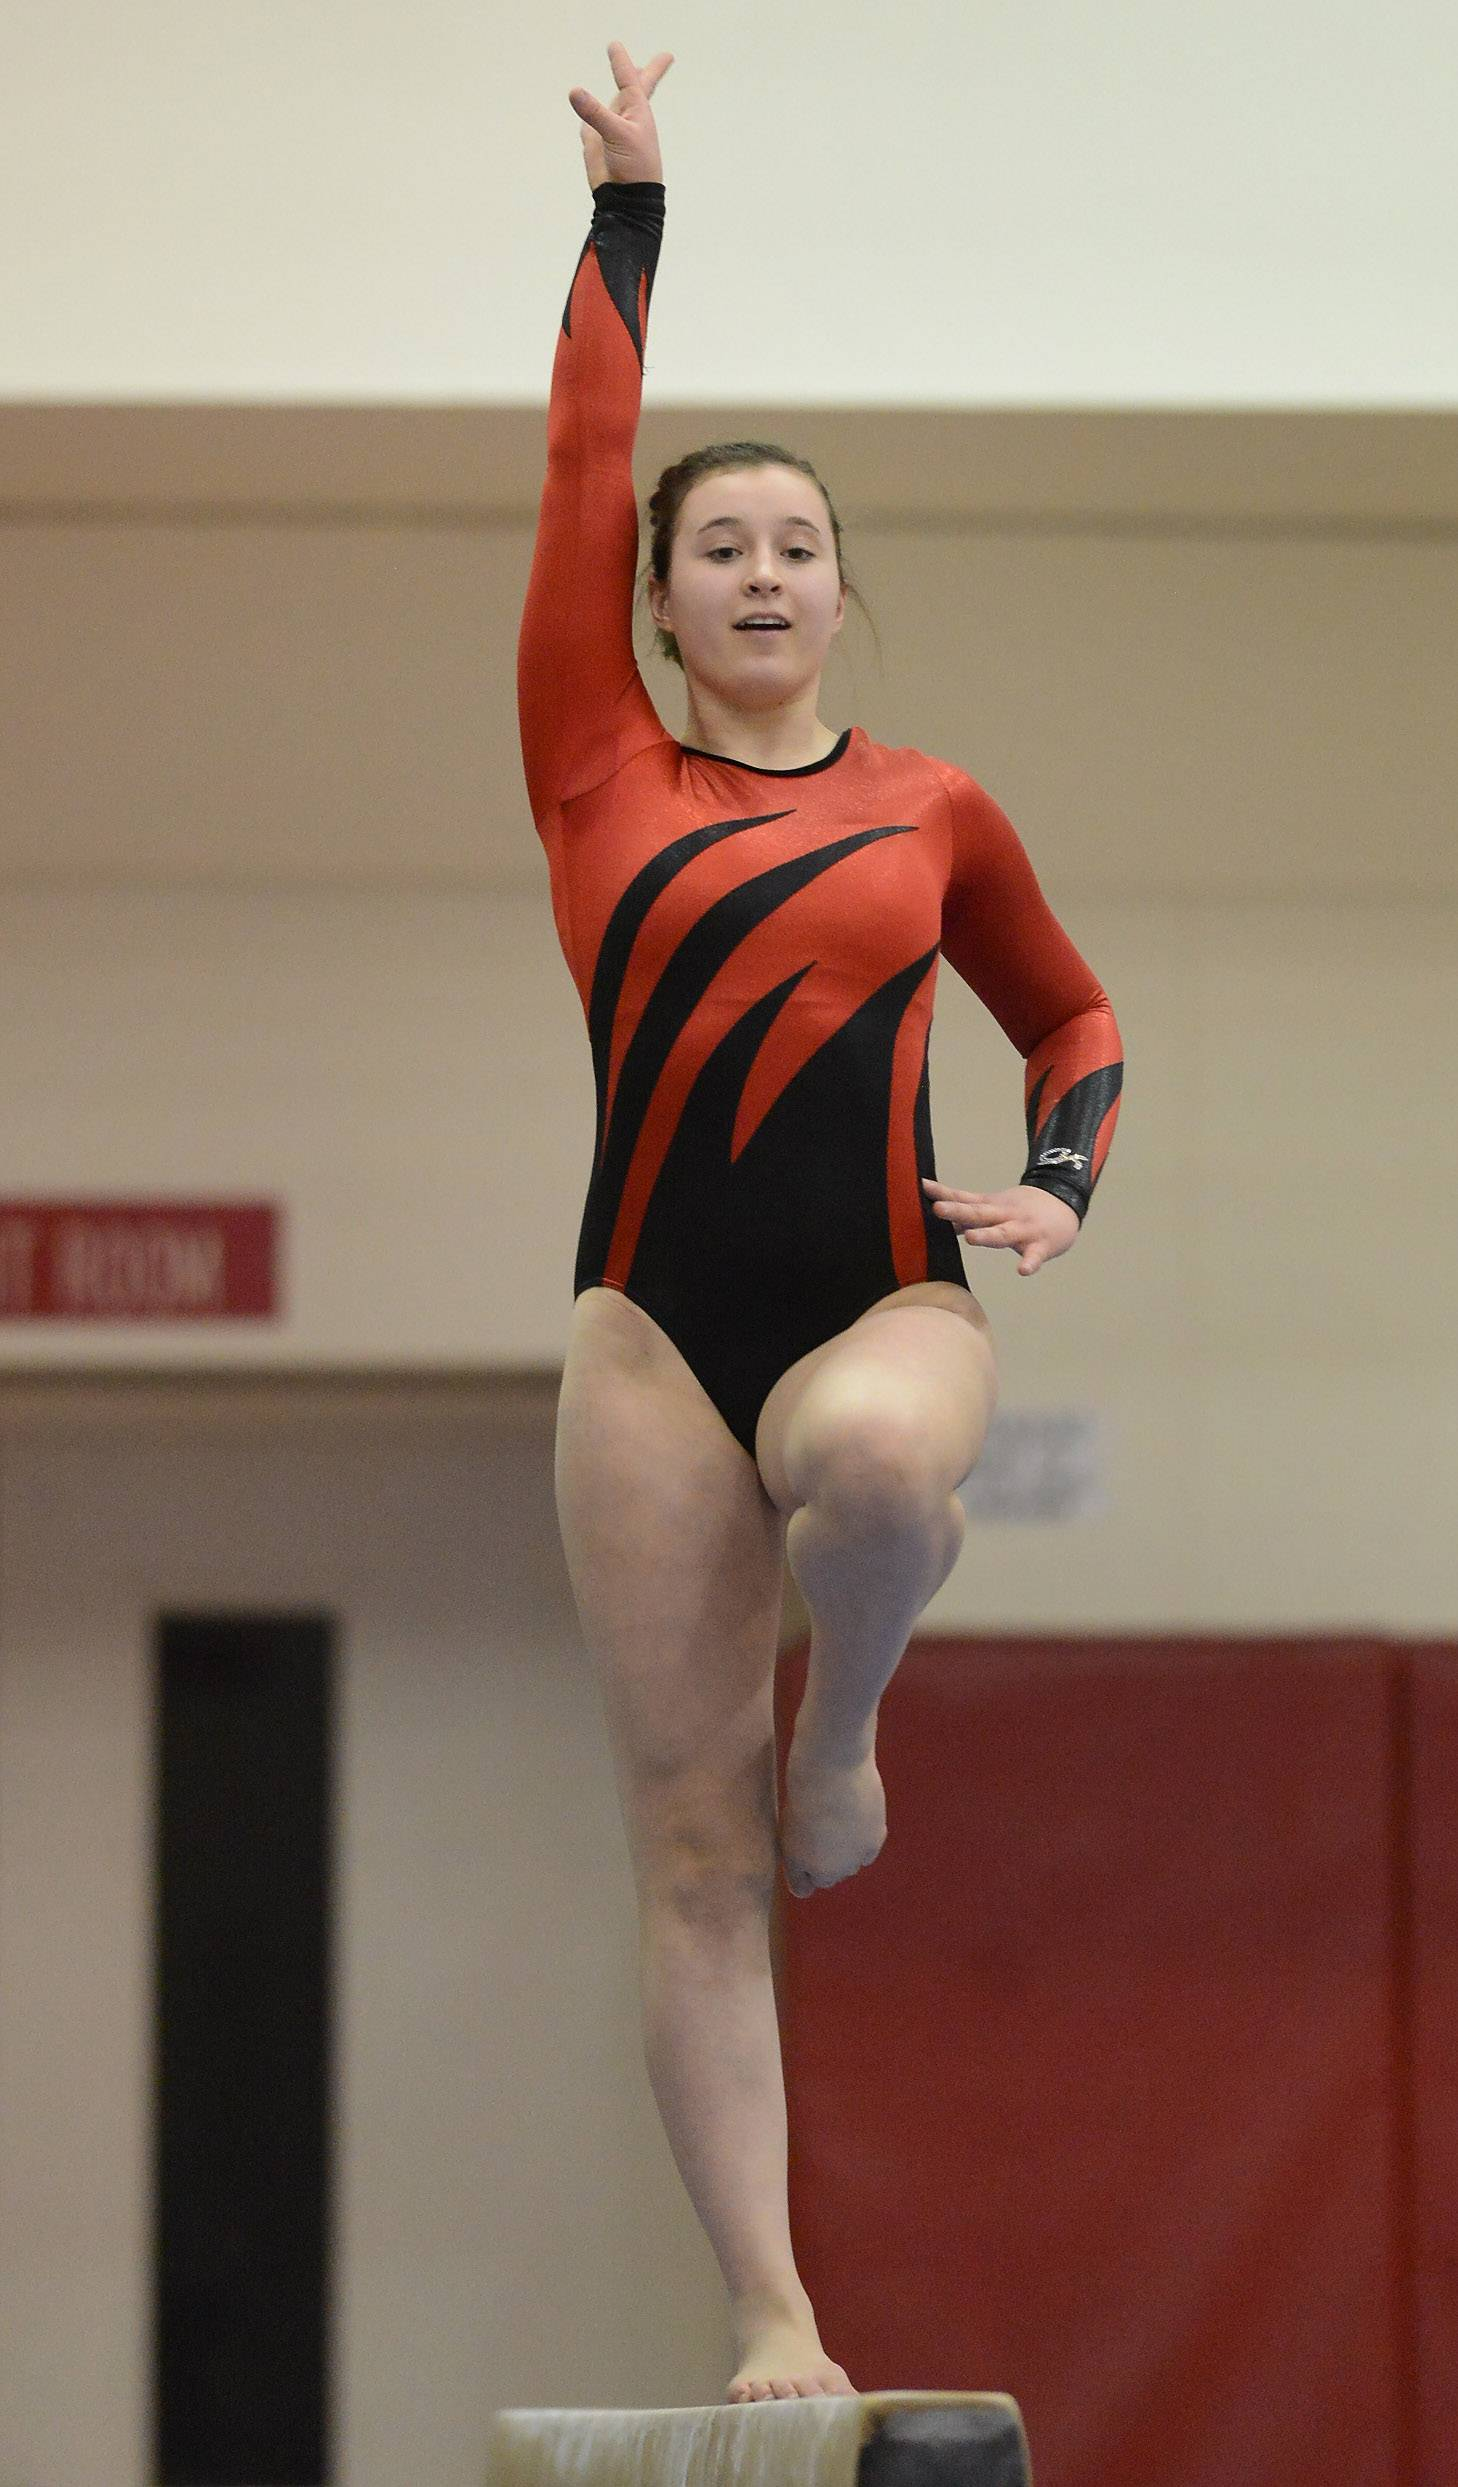 Jill Schuberth of Naperville Central finishing fifth on the balance beam during State Girls Gymnastics Saturday at Palatine High School .